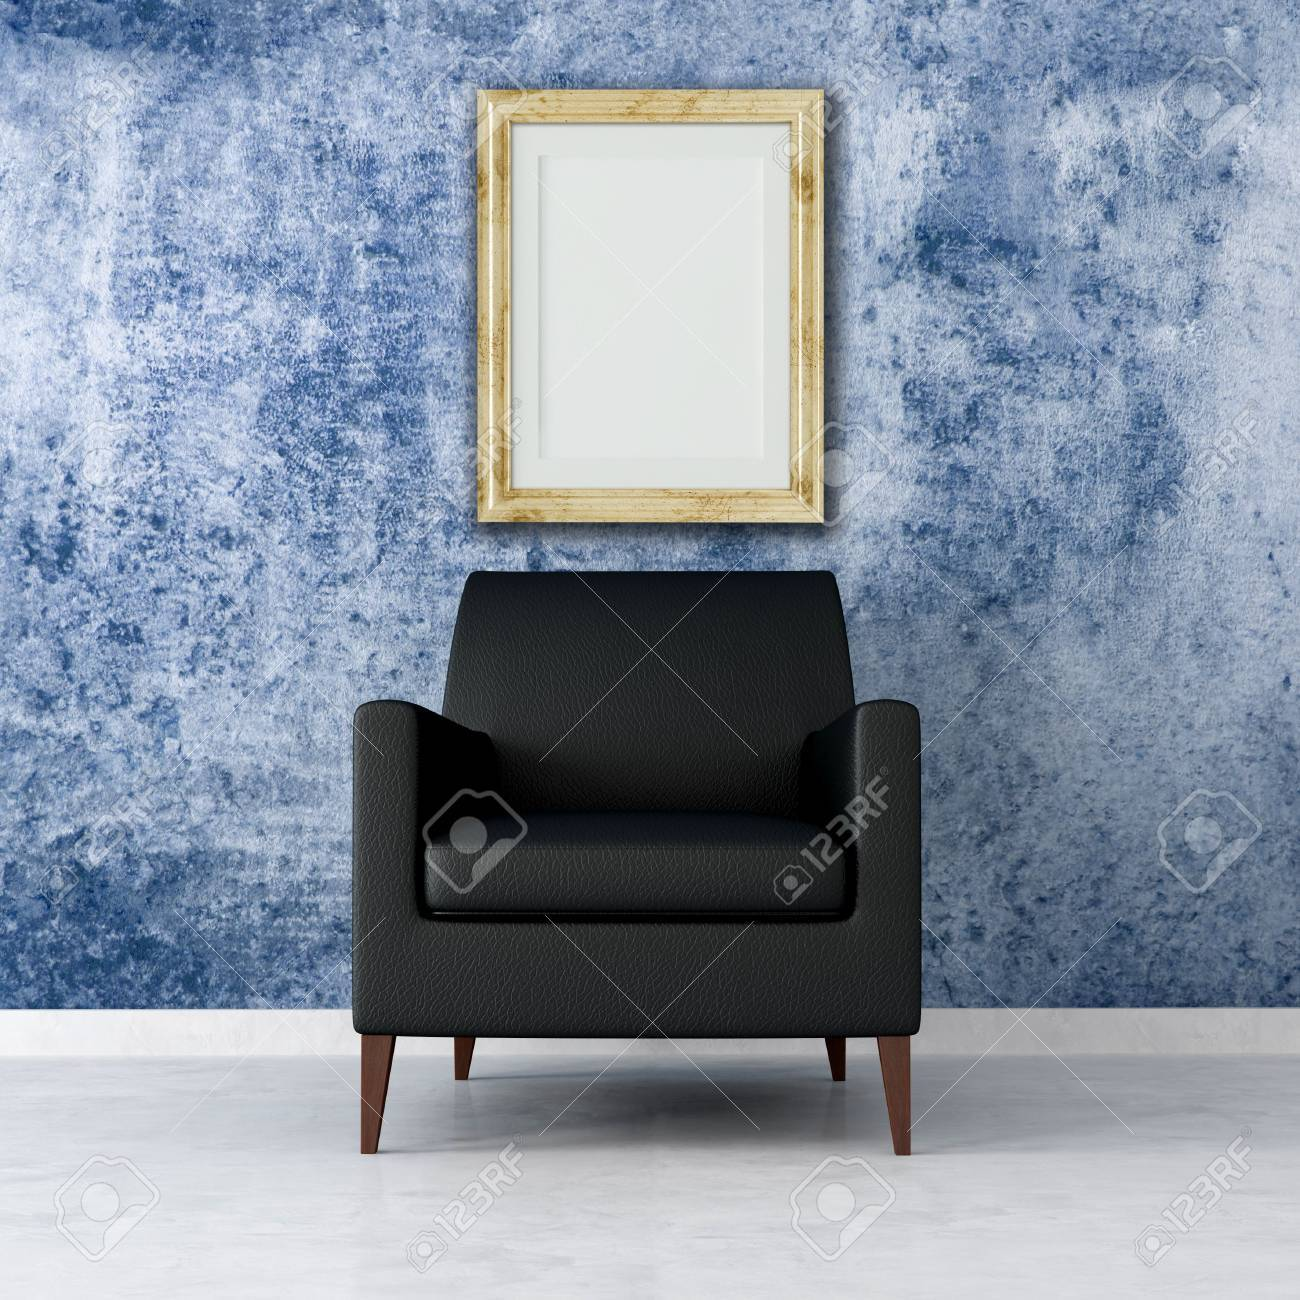 black armchair in a grunge interior with old empty frame -rendering Stock Photo - 5131344